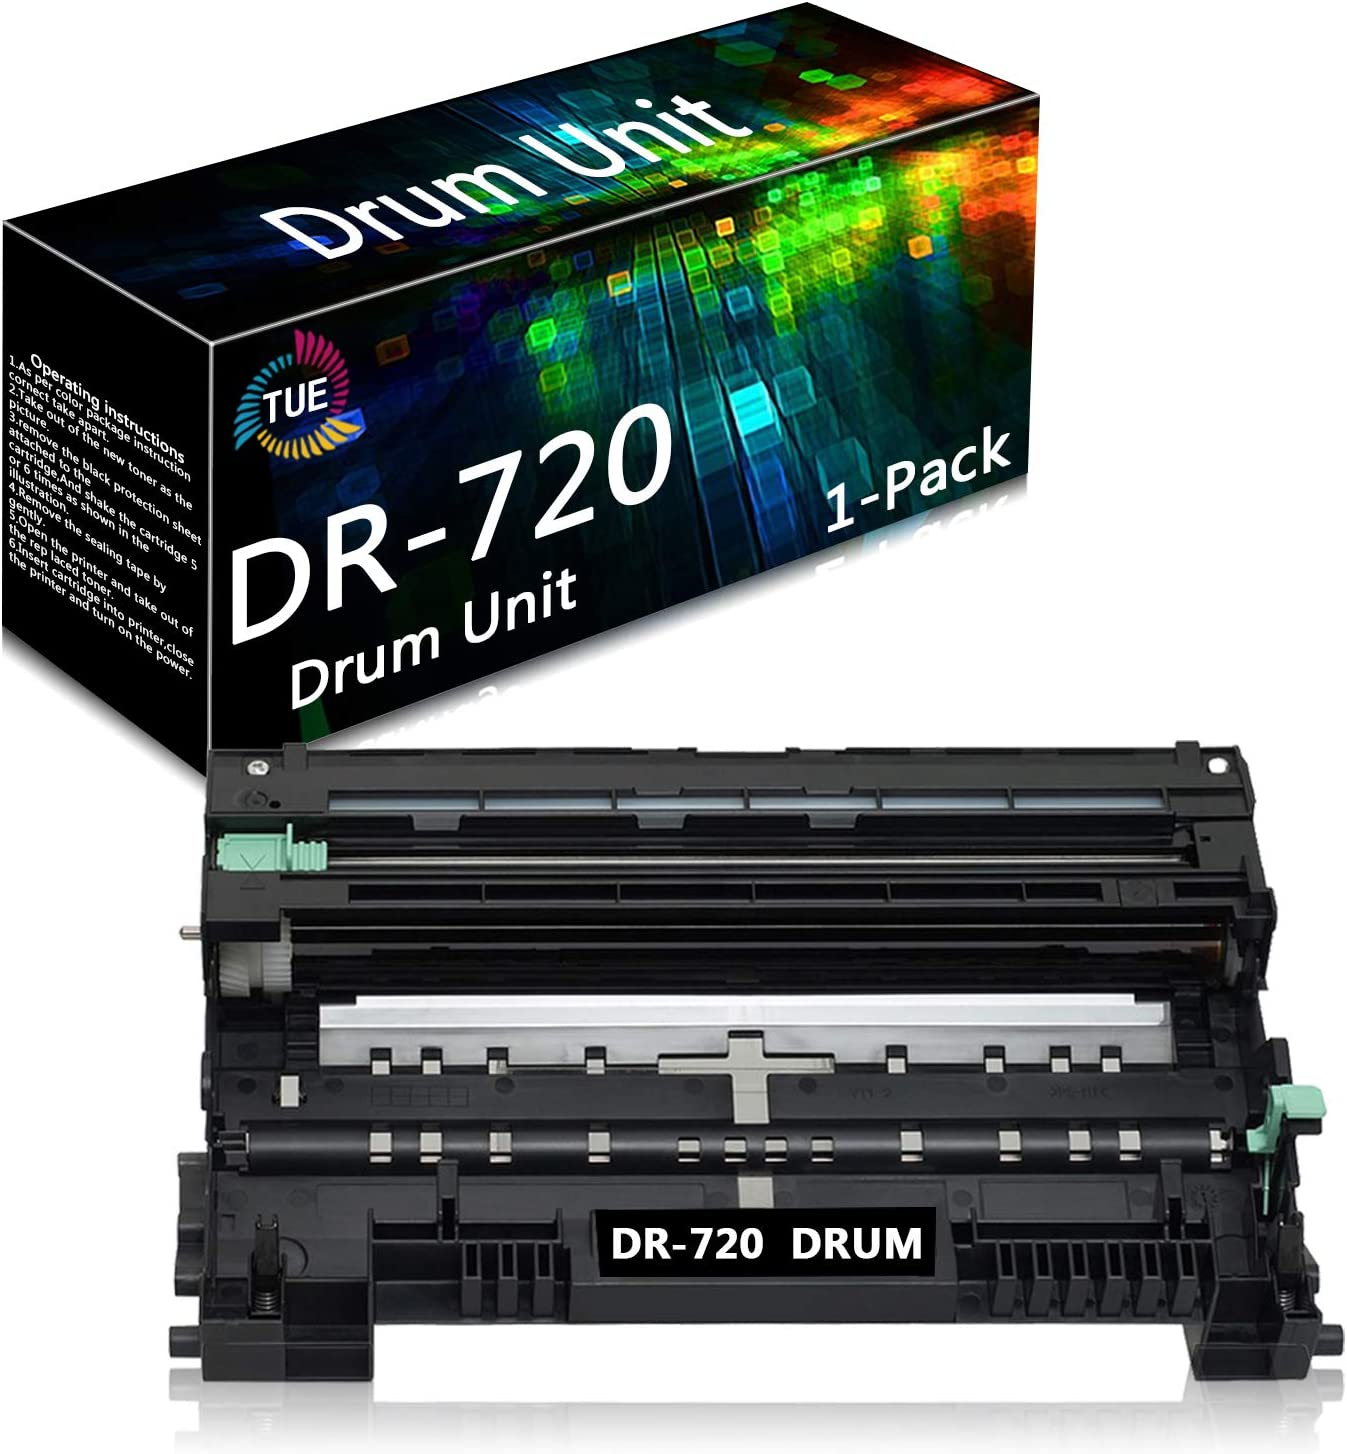 DR720 DR-720 Black 1 Pack Compatible Drum Unit Replacement for Brother HL-5440D 5450DN 5470DW/DWT DCP-8110DN 8150DN 8155DN 8510DN MFC-8710DW 8810DW 8910DW Printer, Sold by TueInk